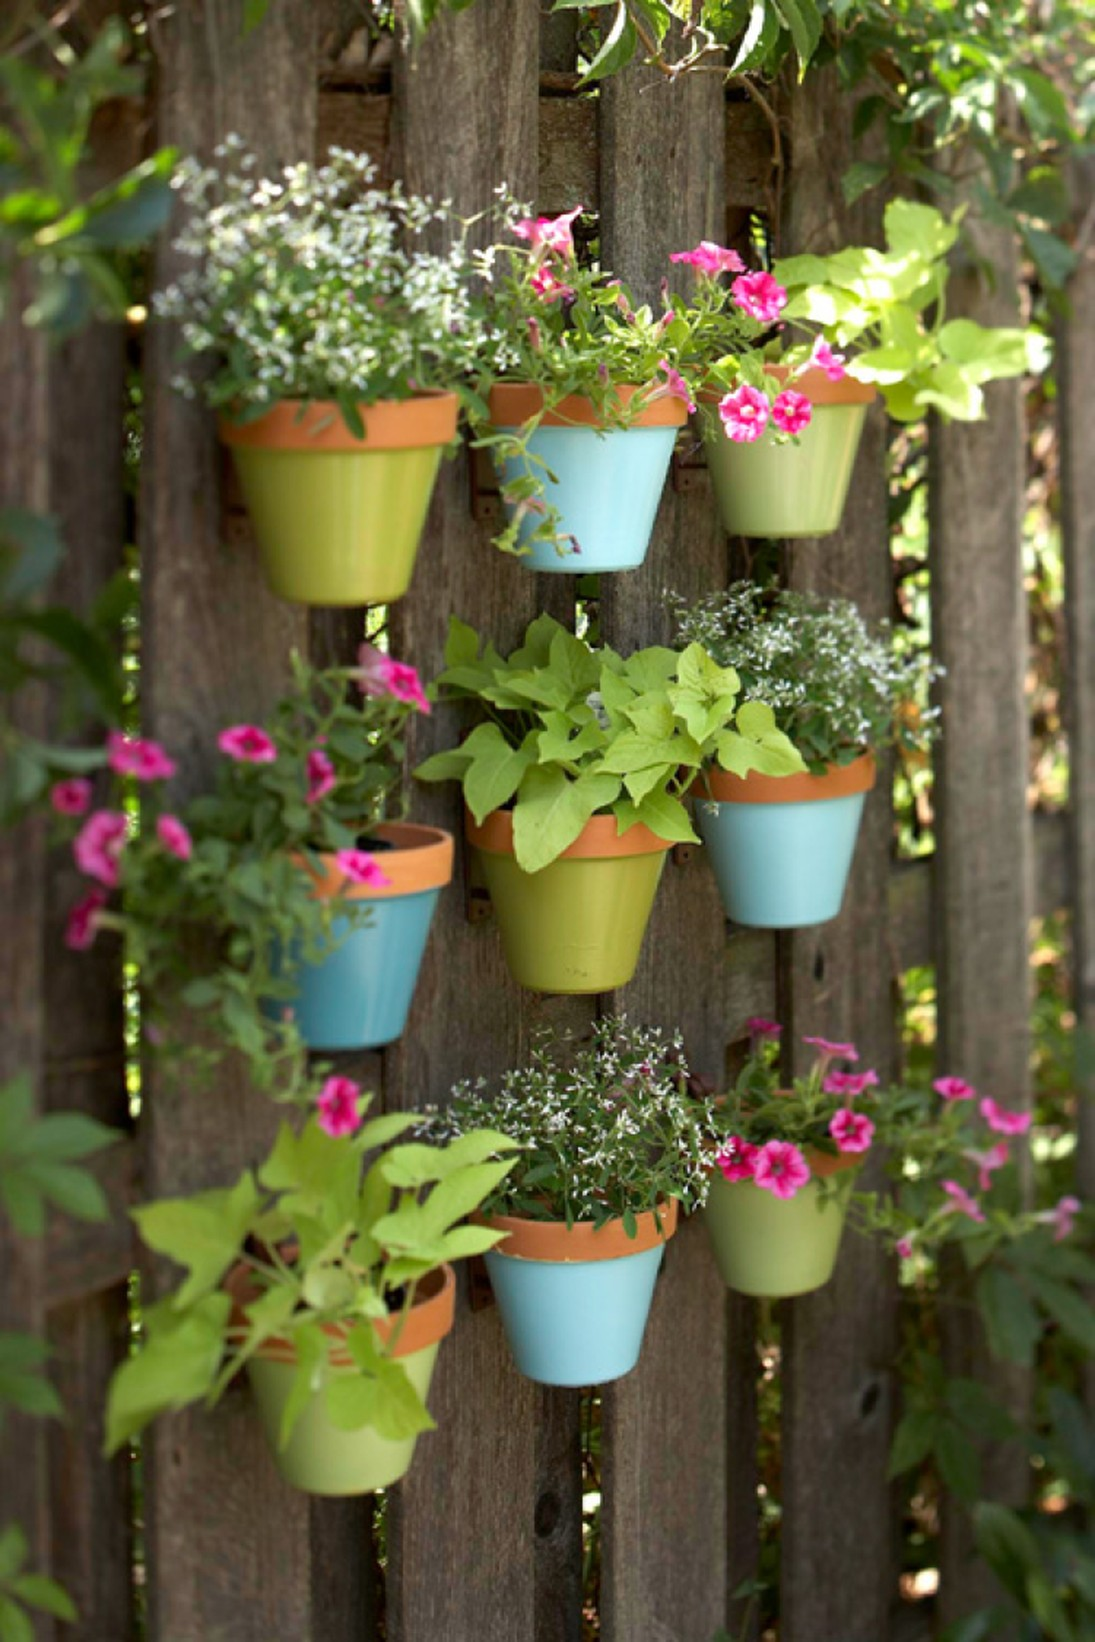 Vertical Gardening Ideas stackable vertical gardens can be any design or material just use your imagination 7 Pastel Shades Of Blue And Green Highlight This Charming Design